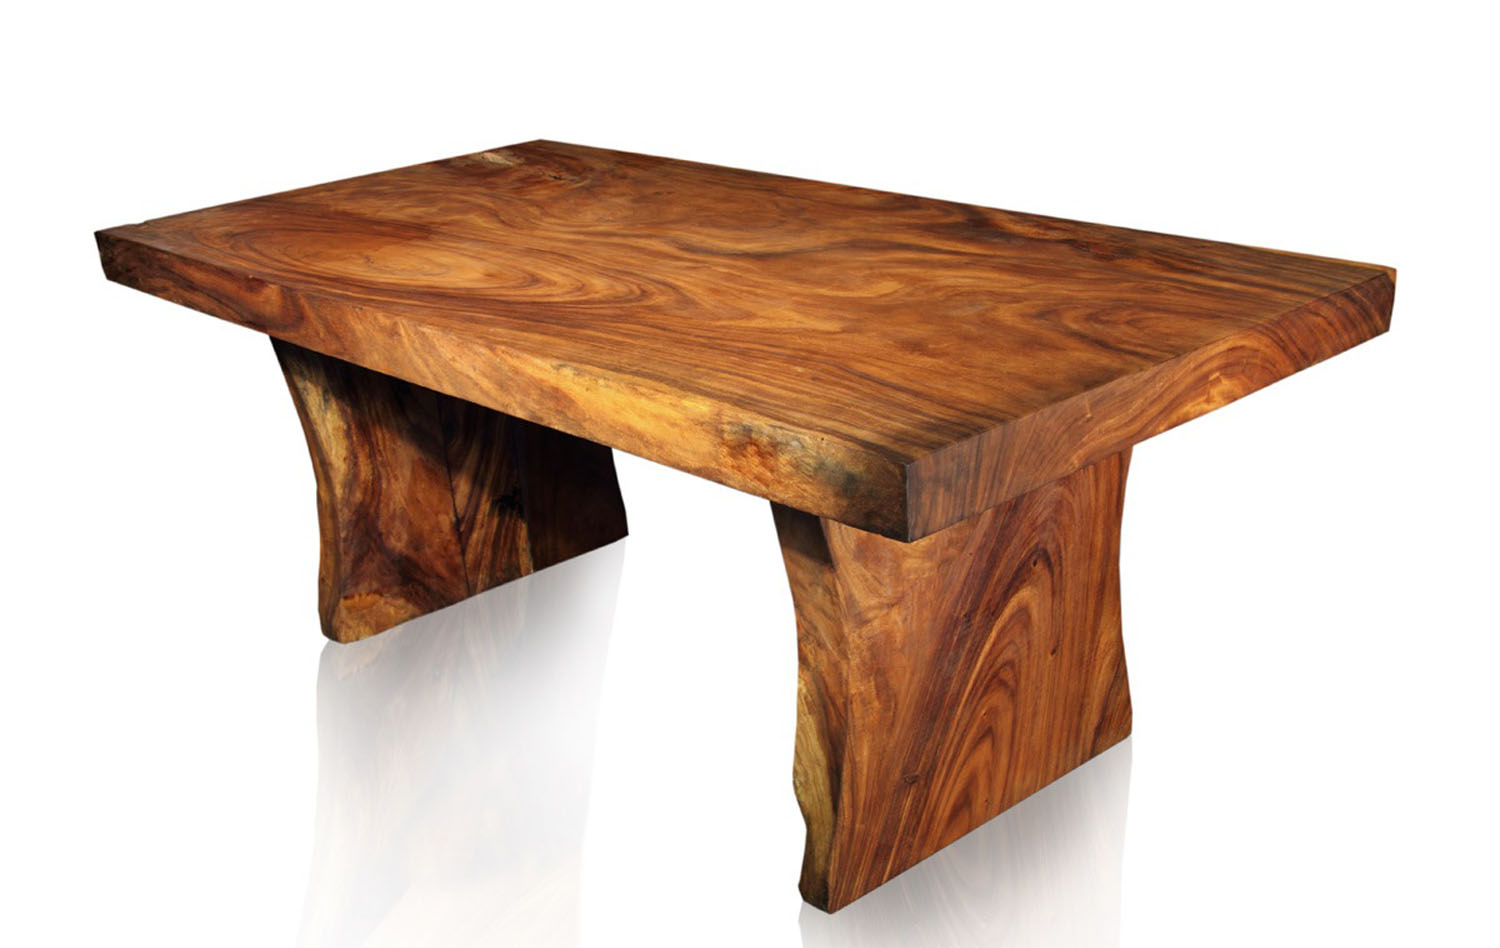 Copy of Majestic Straight Cut Single Slab Dining Table (2)